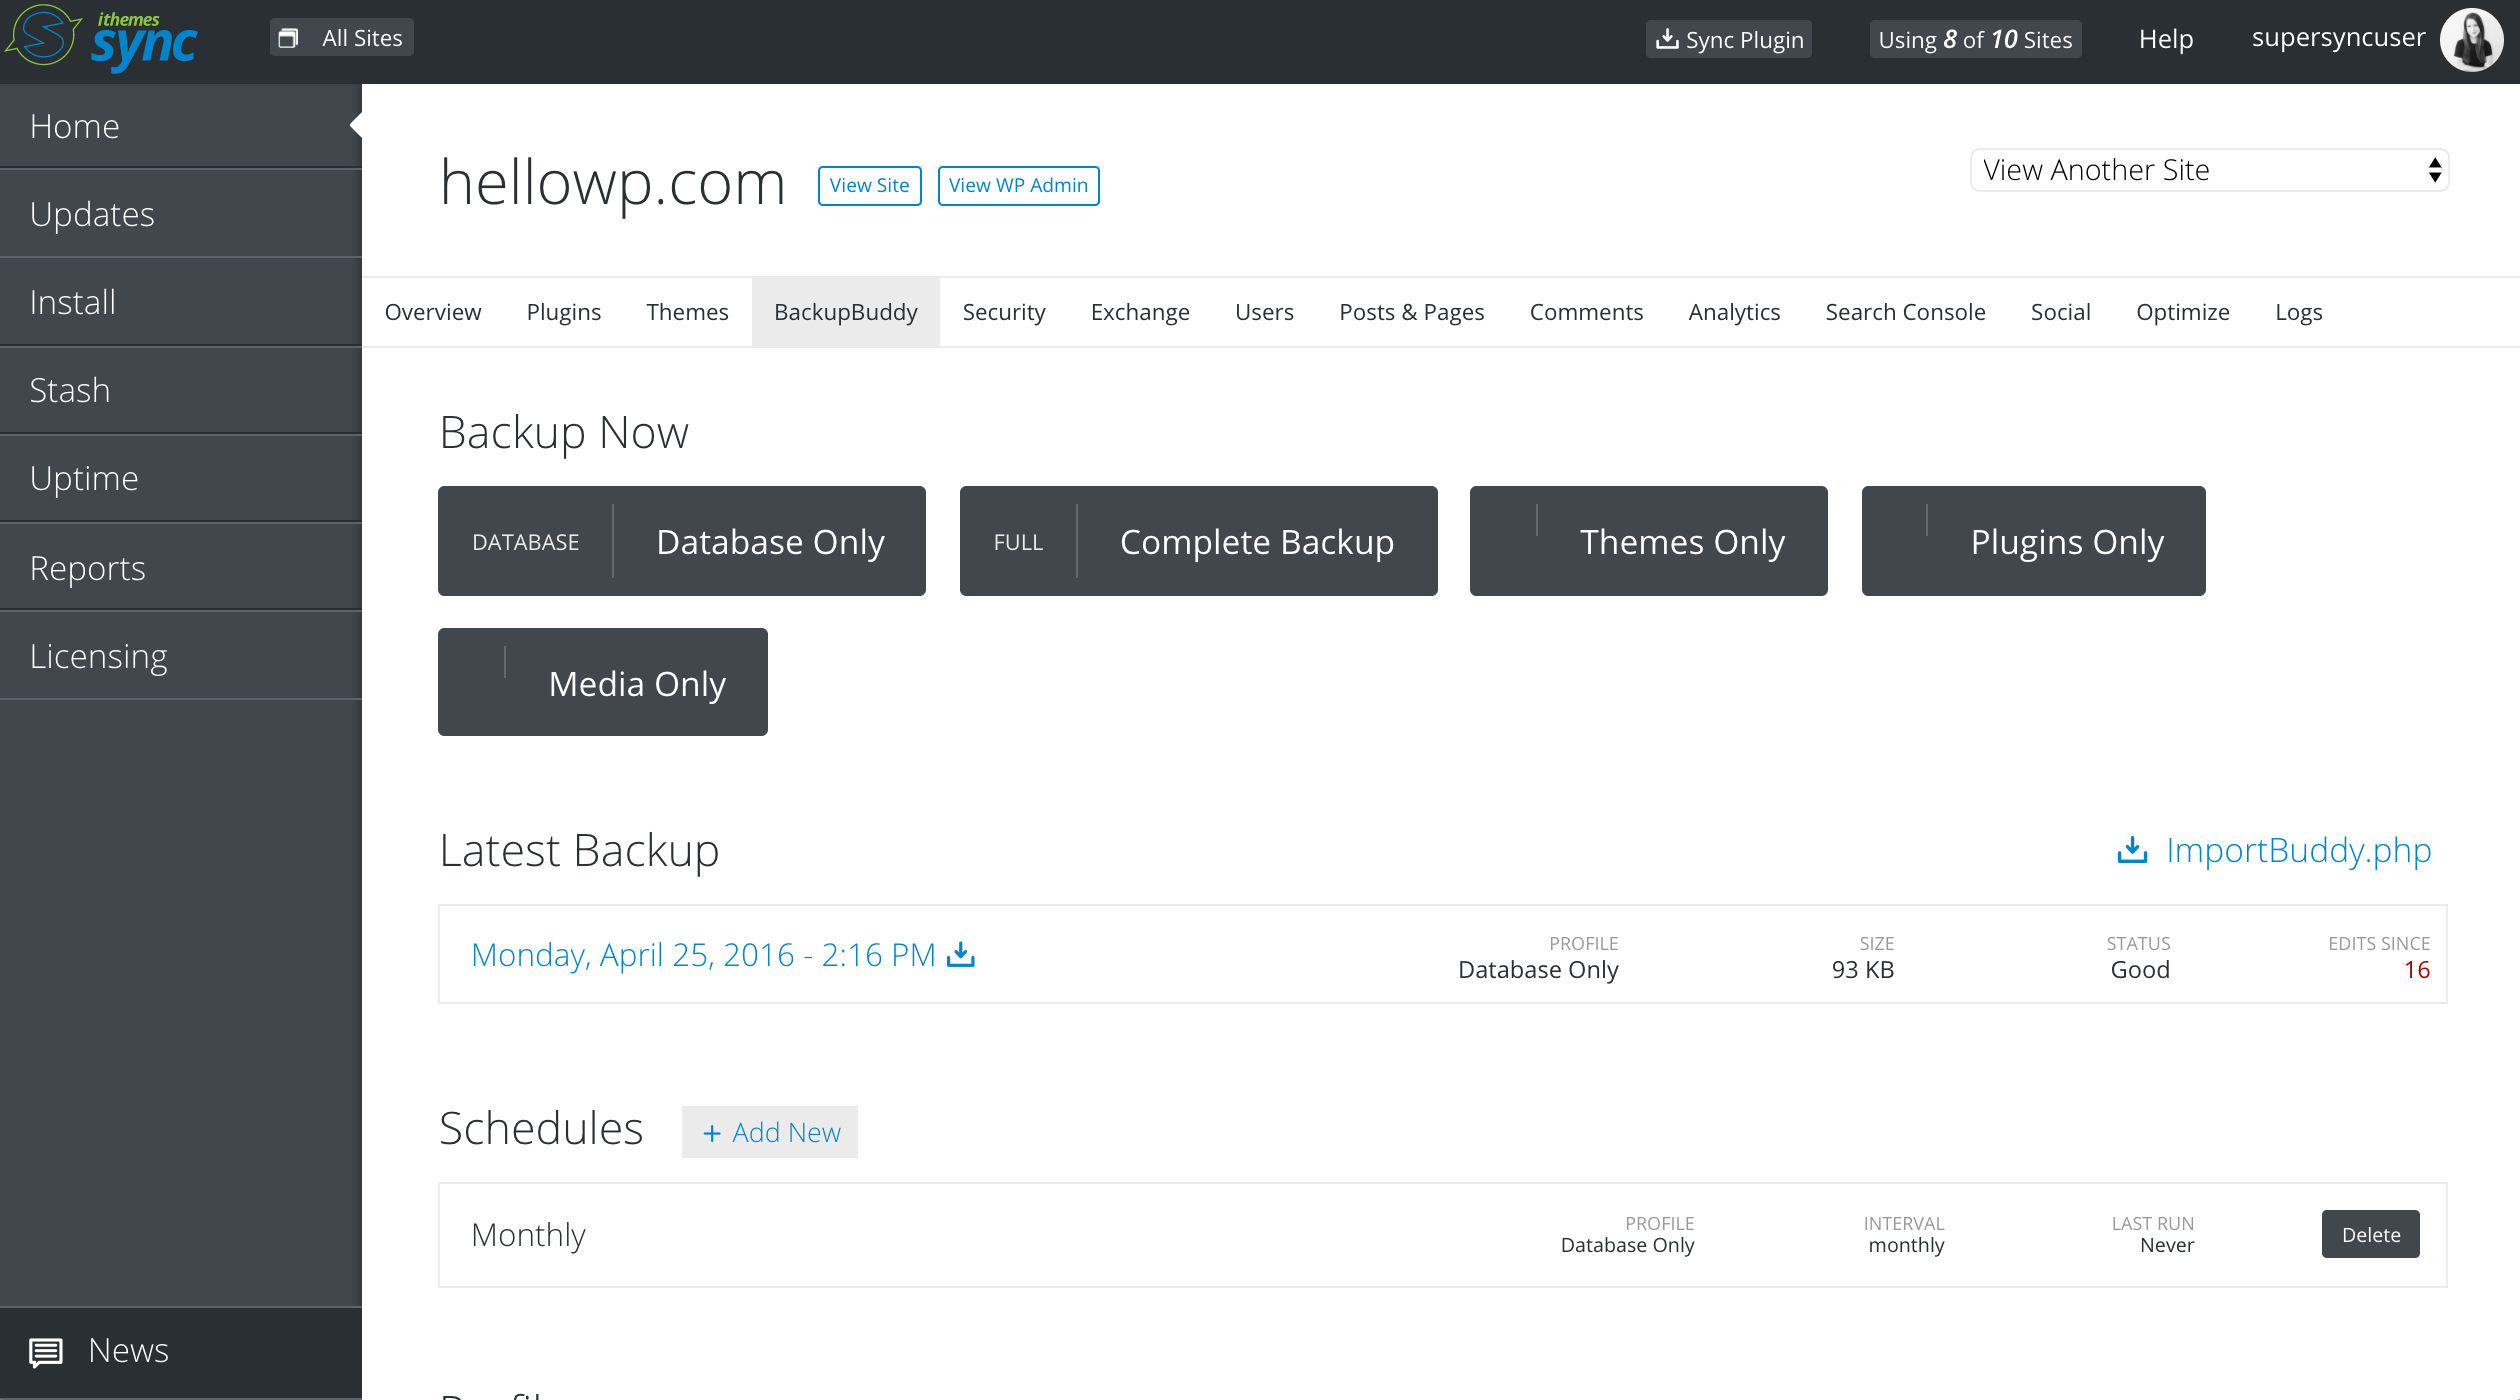 Run remote backups and download backup files remotely with BackupBuddy integration